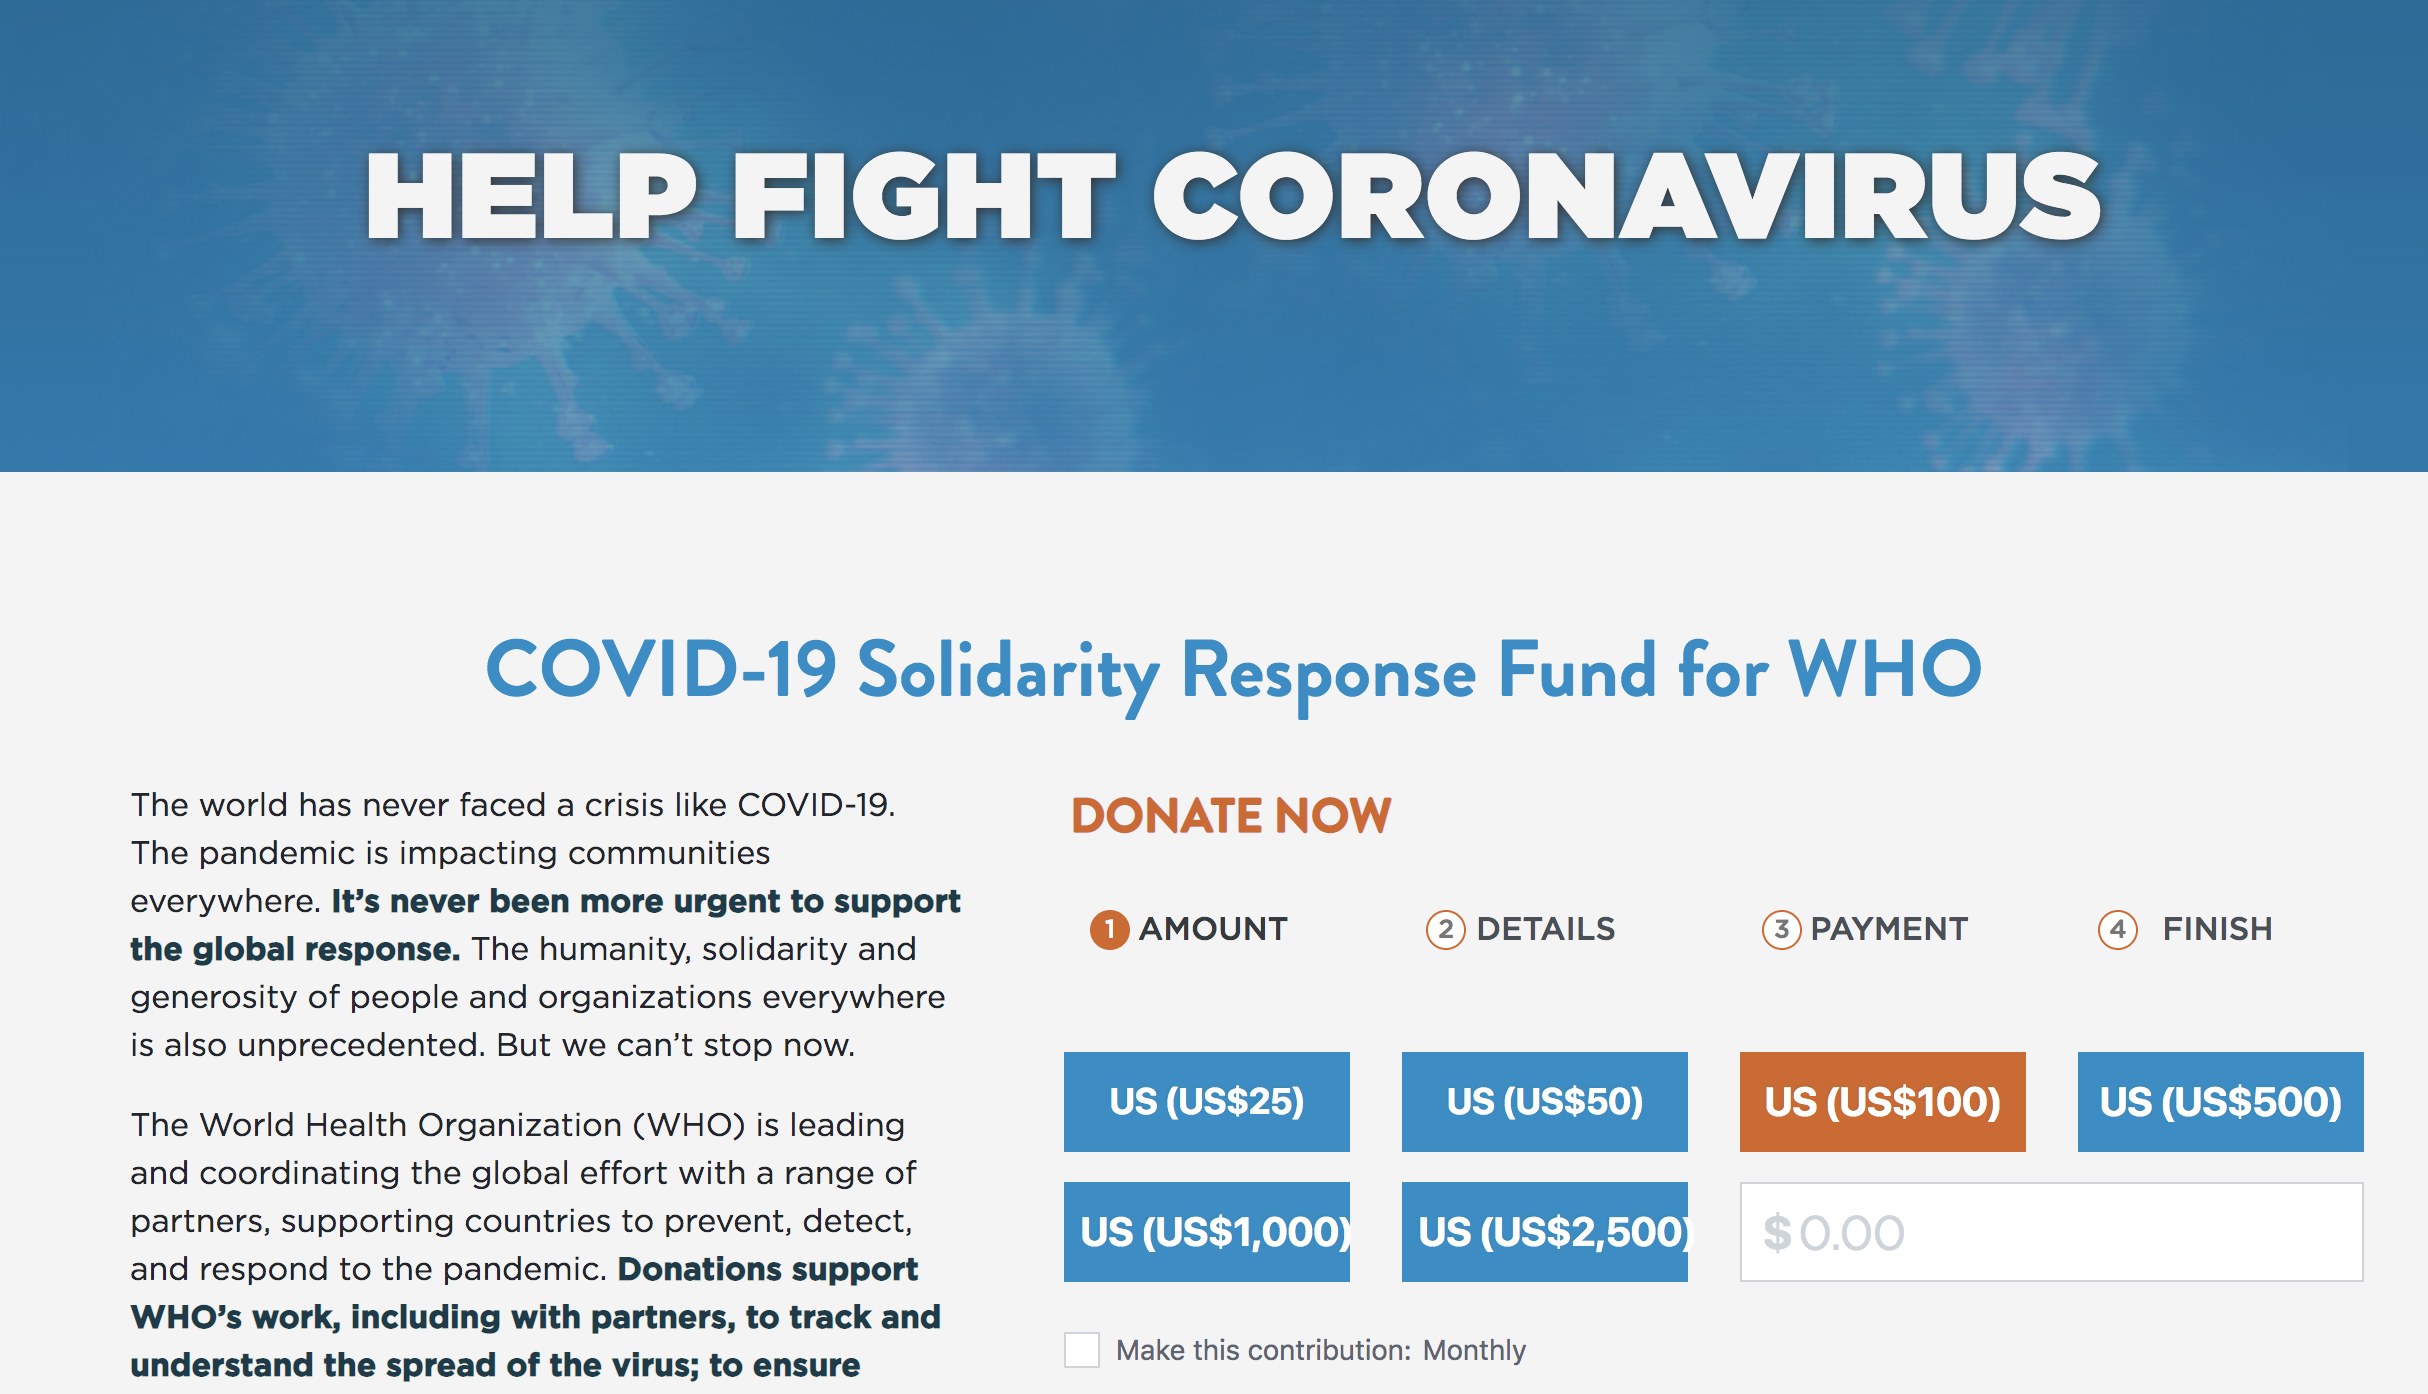 COVID-19 Solidarity Response Fund for WHO